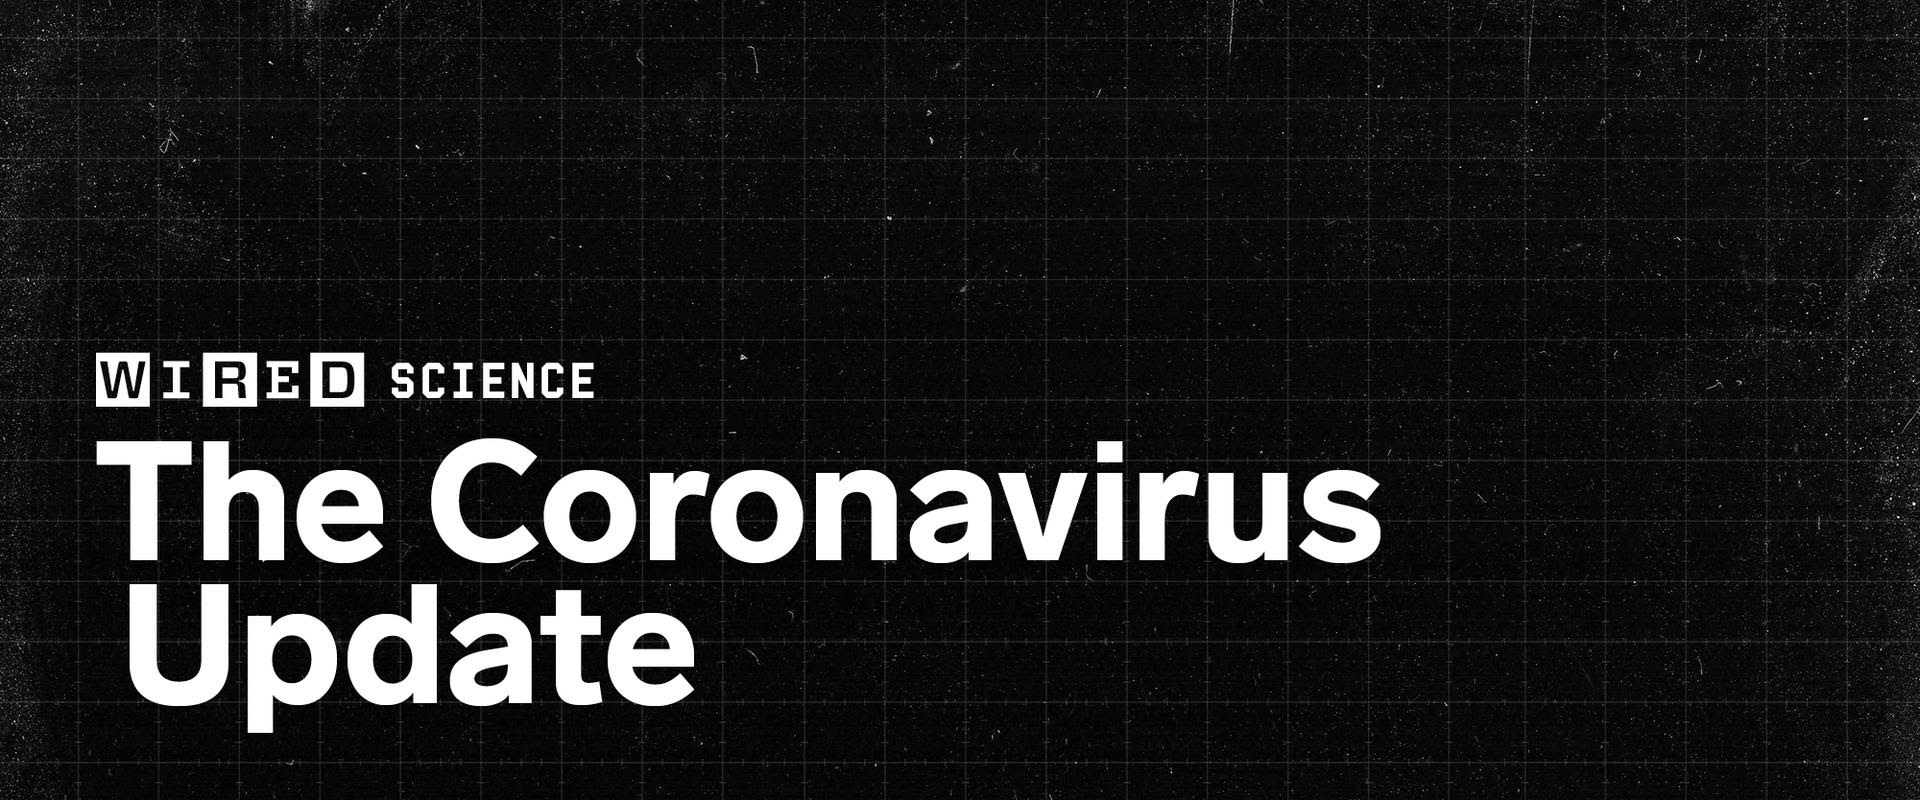 (image) WIRED Coronavirus Update Logo